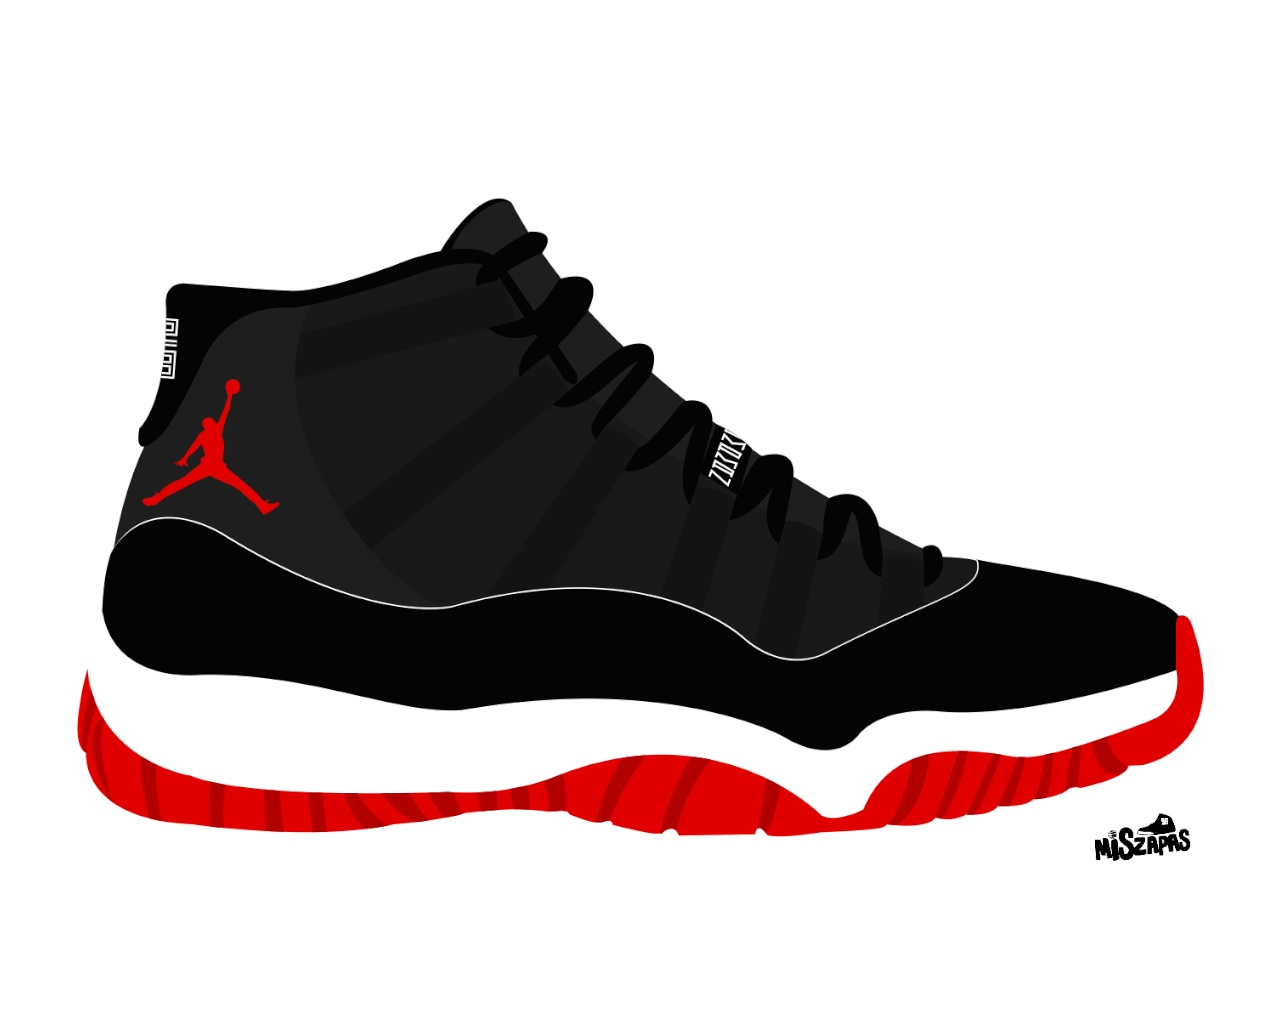 45 Jordan 11 Wallpaper On Wallpapersafari